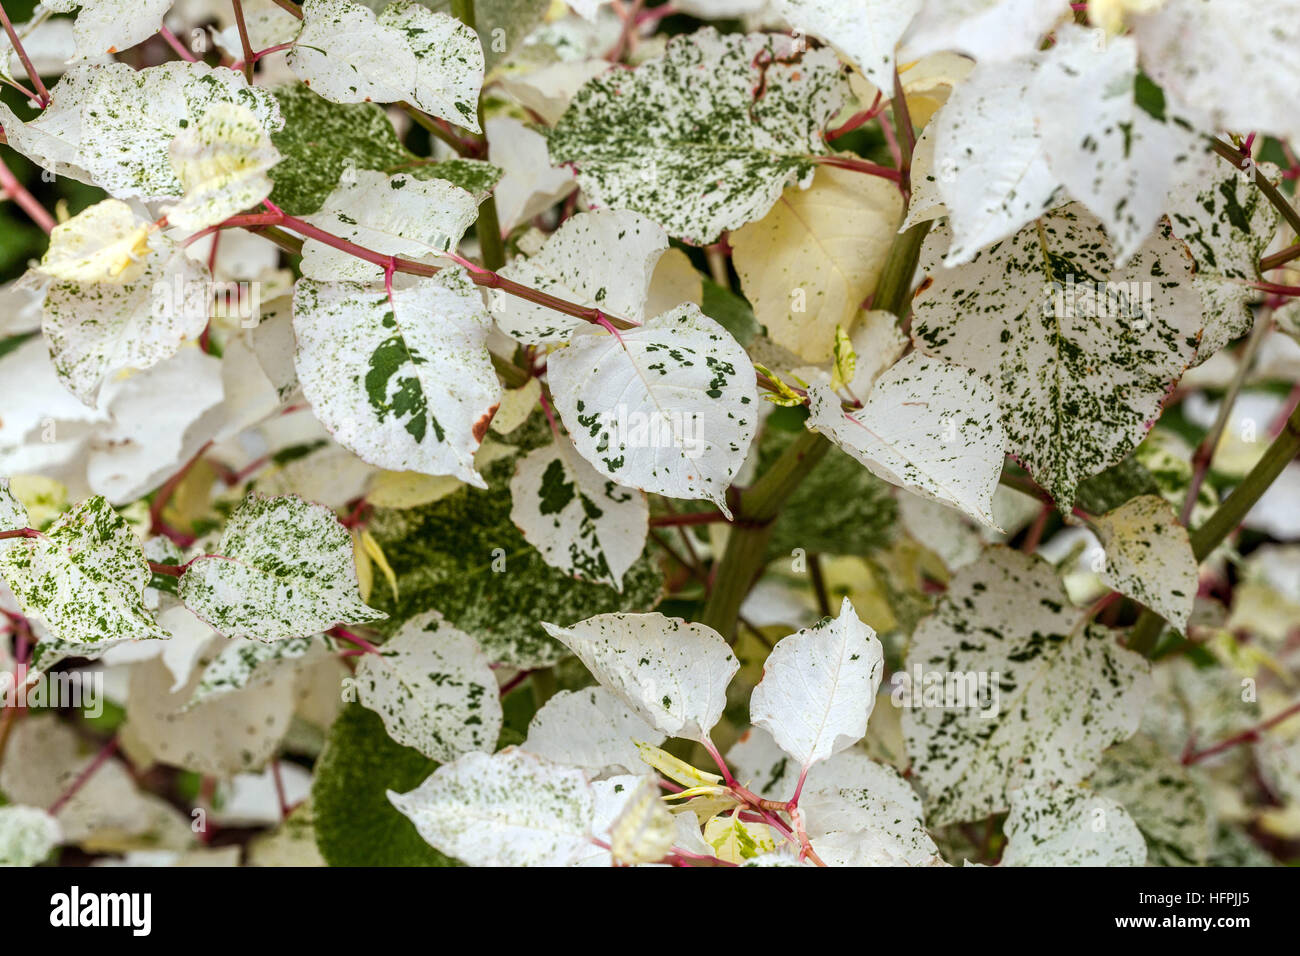 Fallopia japonica 'Variegata' with marbled effect of leaves - Stock Image